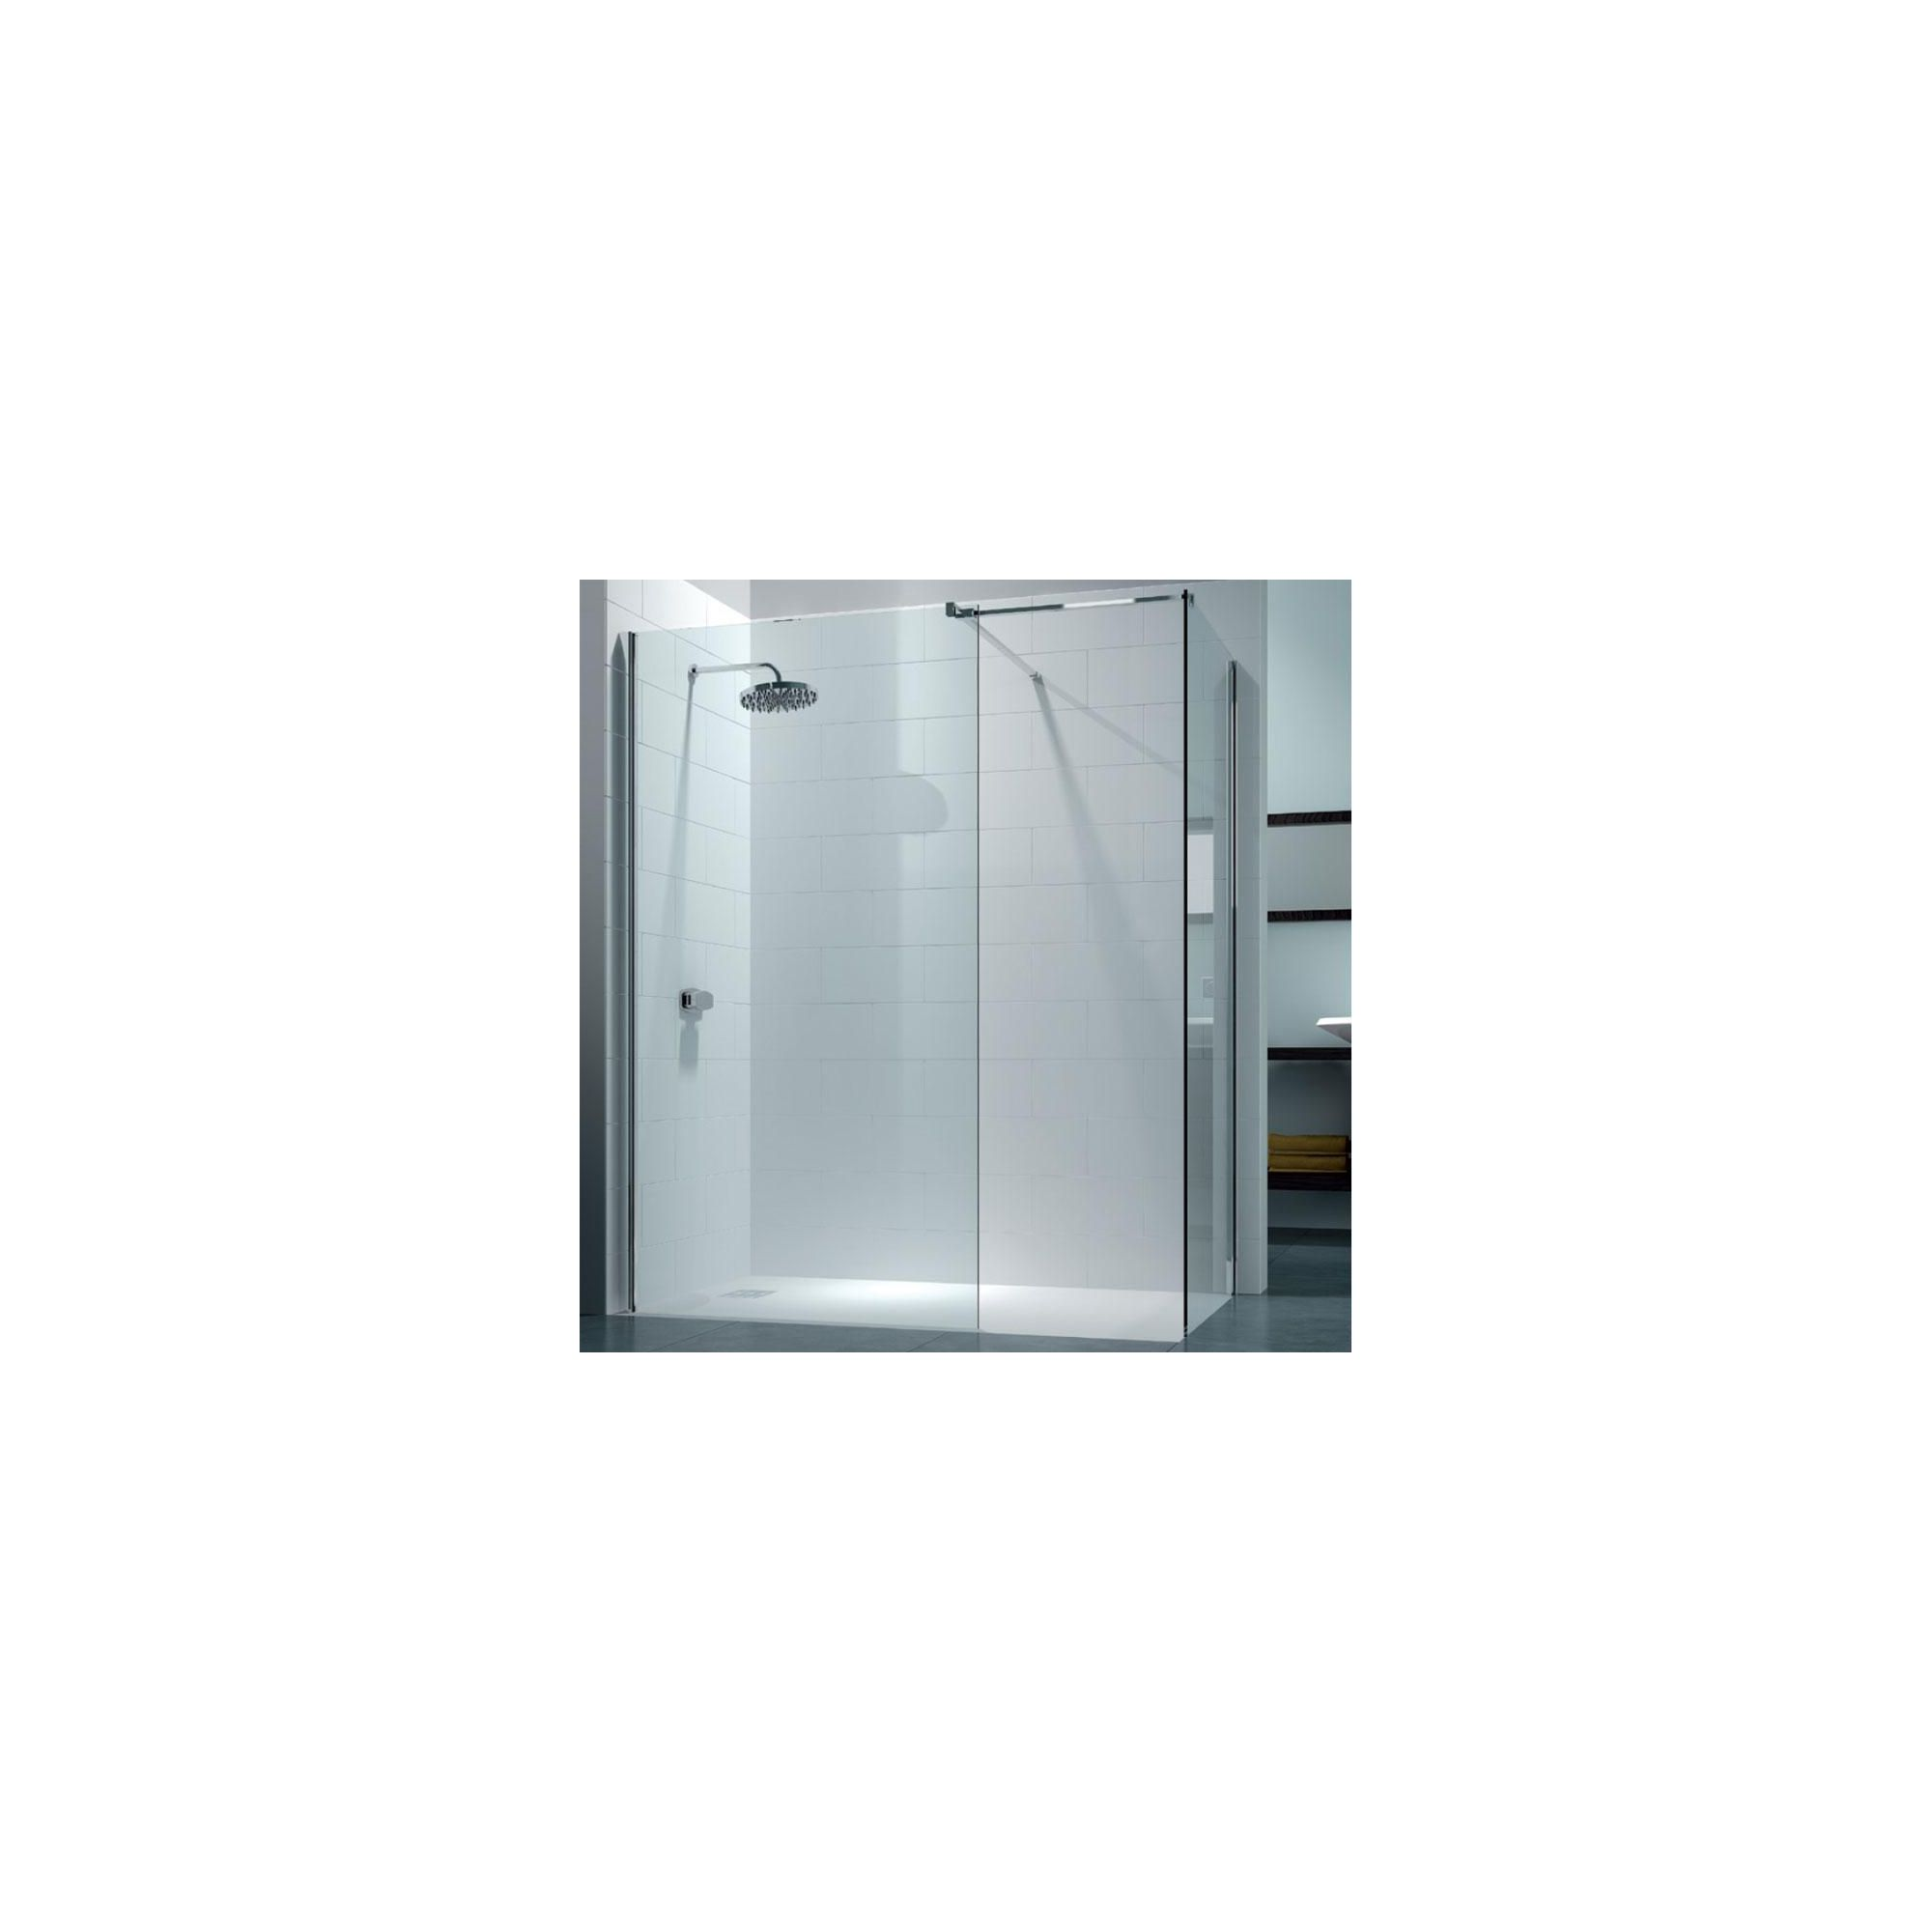 Merlyn Series 8 Walk-In Shower Enclosure, 1500mm x 800mm, 8mm Glass, excluding Tray at Tesco Direct